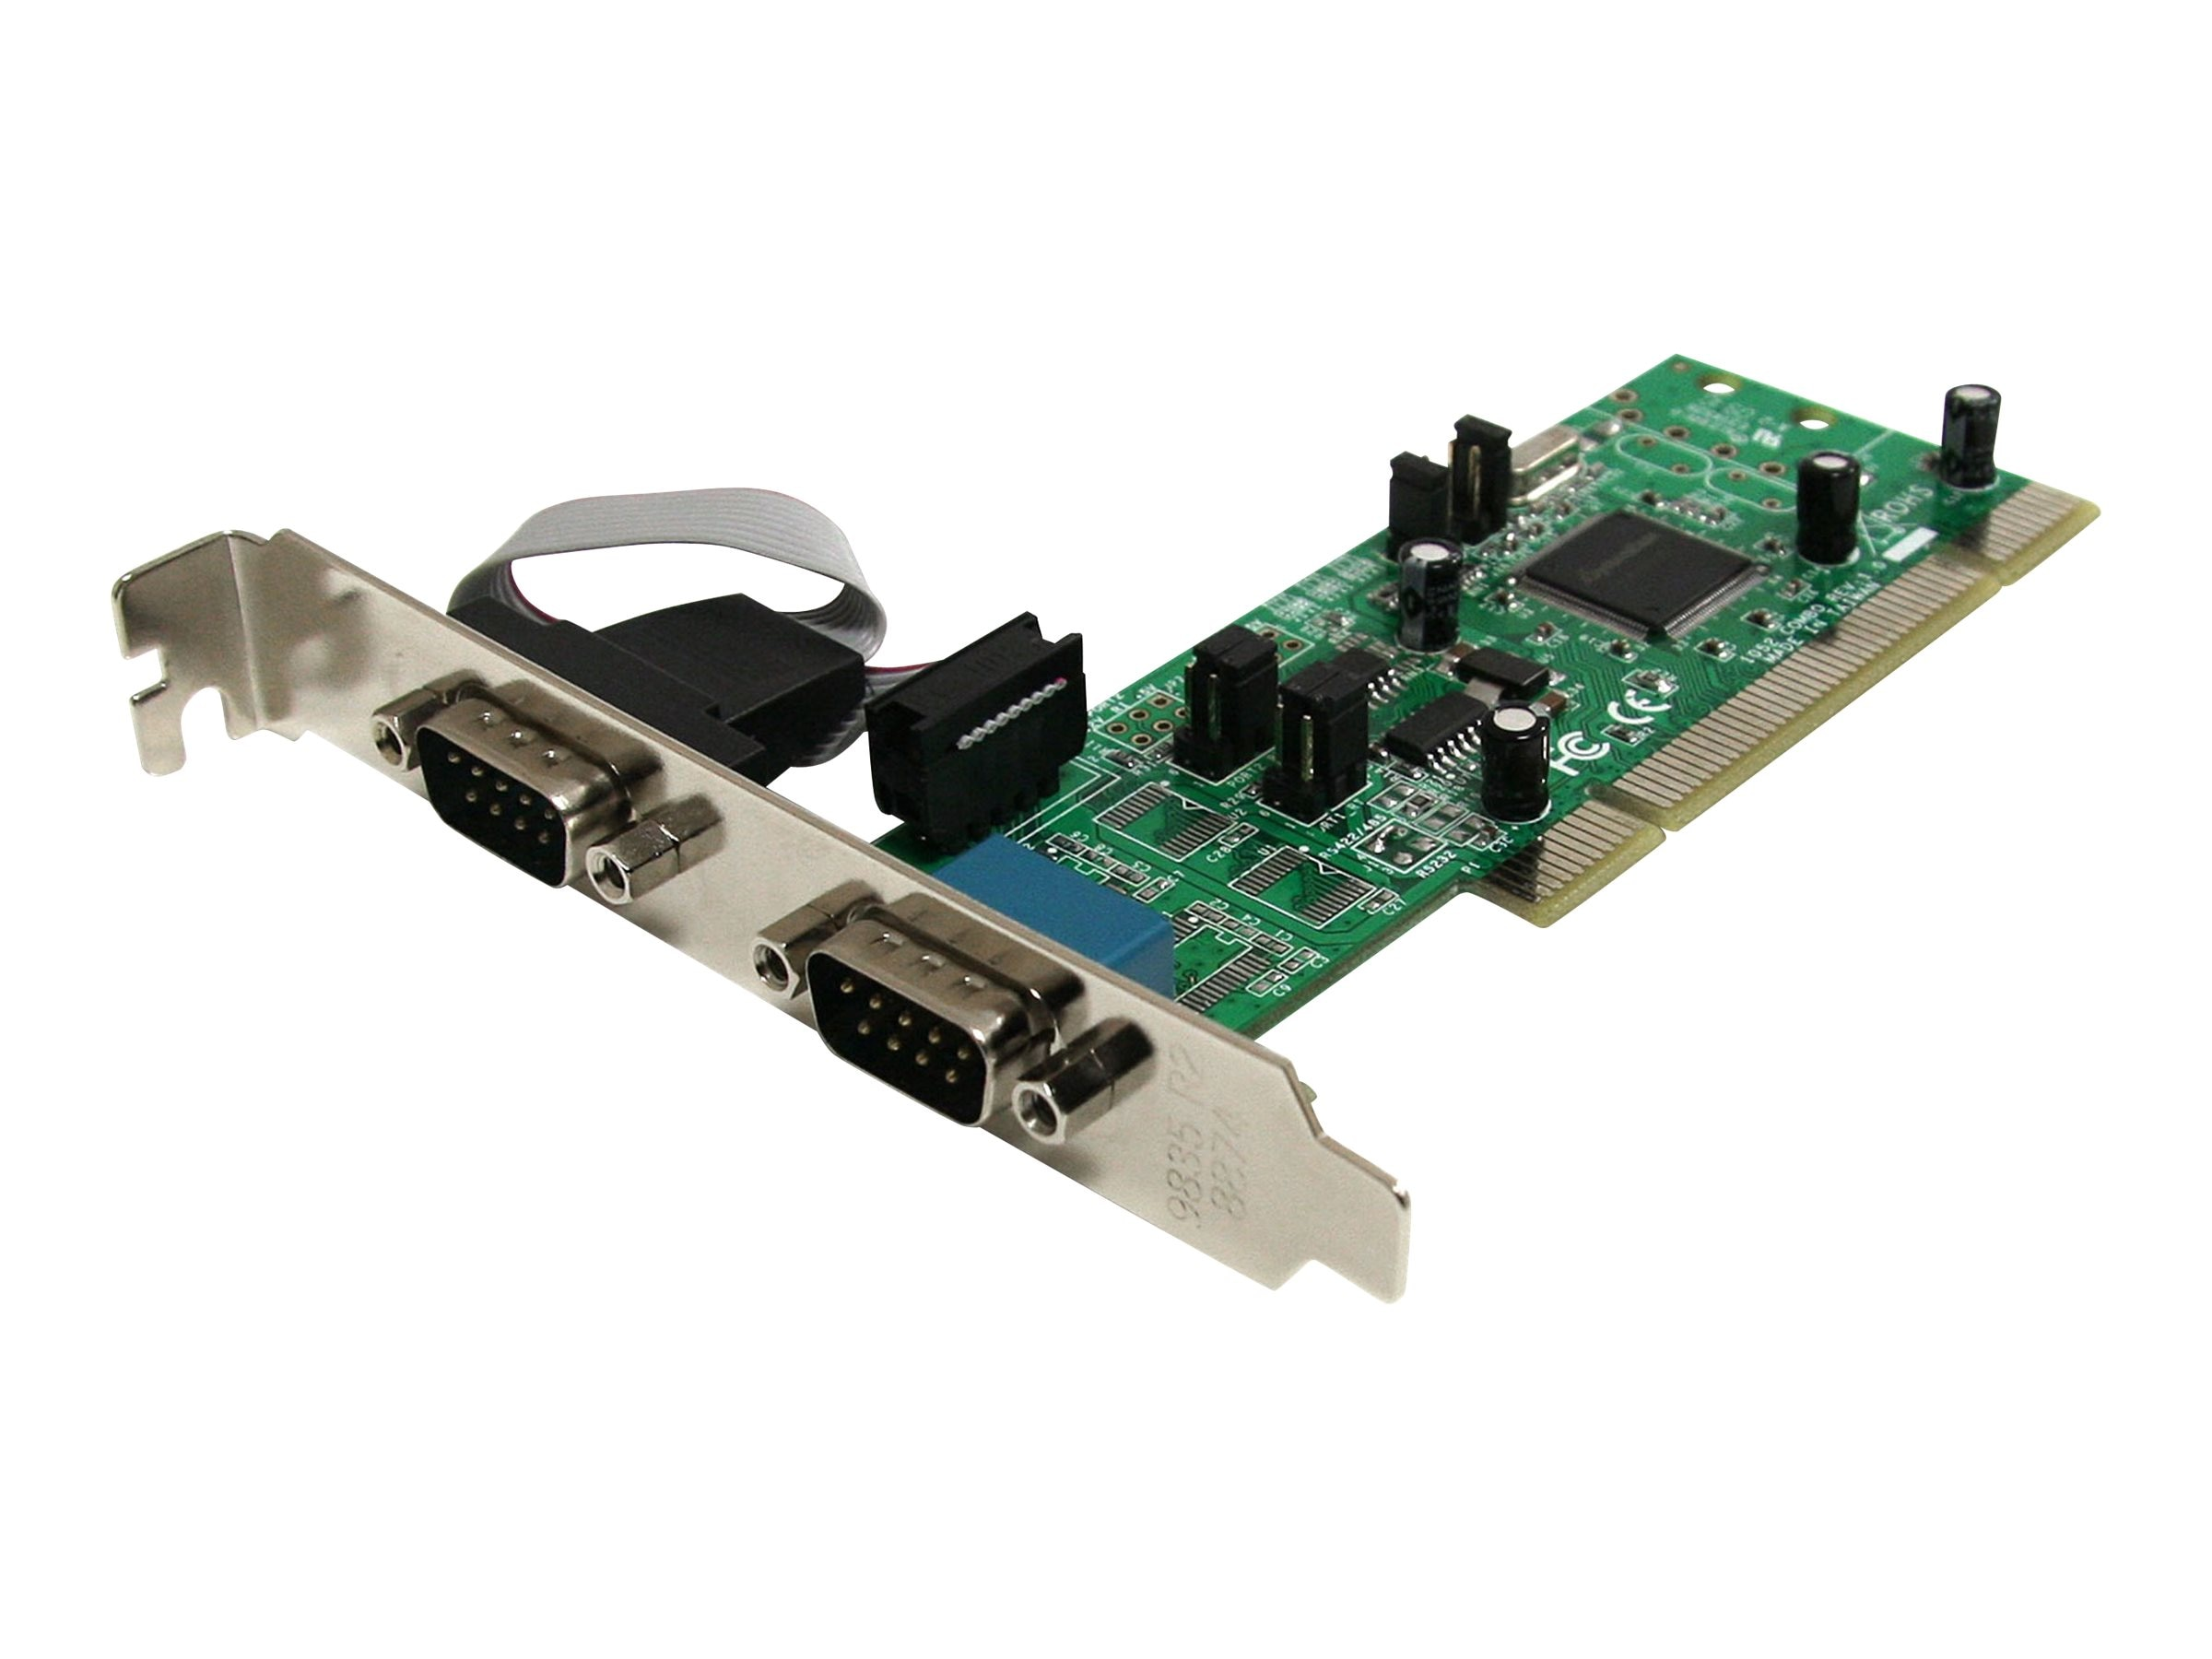 StarTech.com 2 Port PCI RS422 485 Serial Adapter Card w  161050 UART, PCI2S4851050, 12889388, Controller Cards & I/O Boards